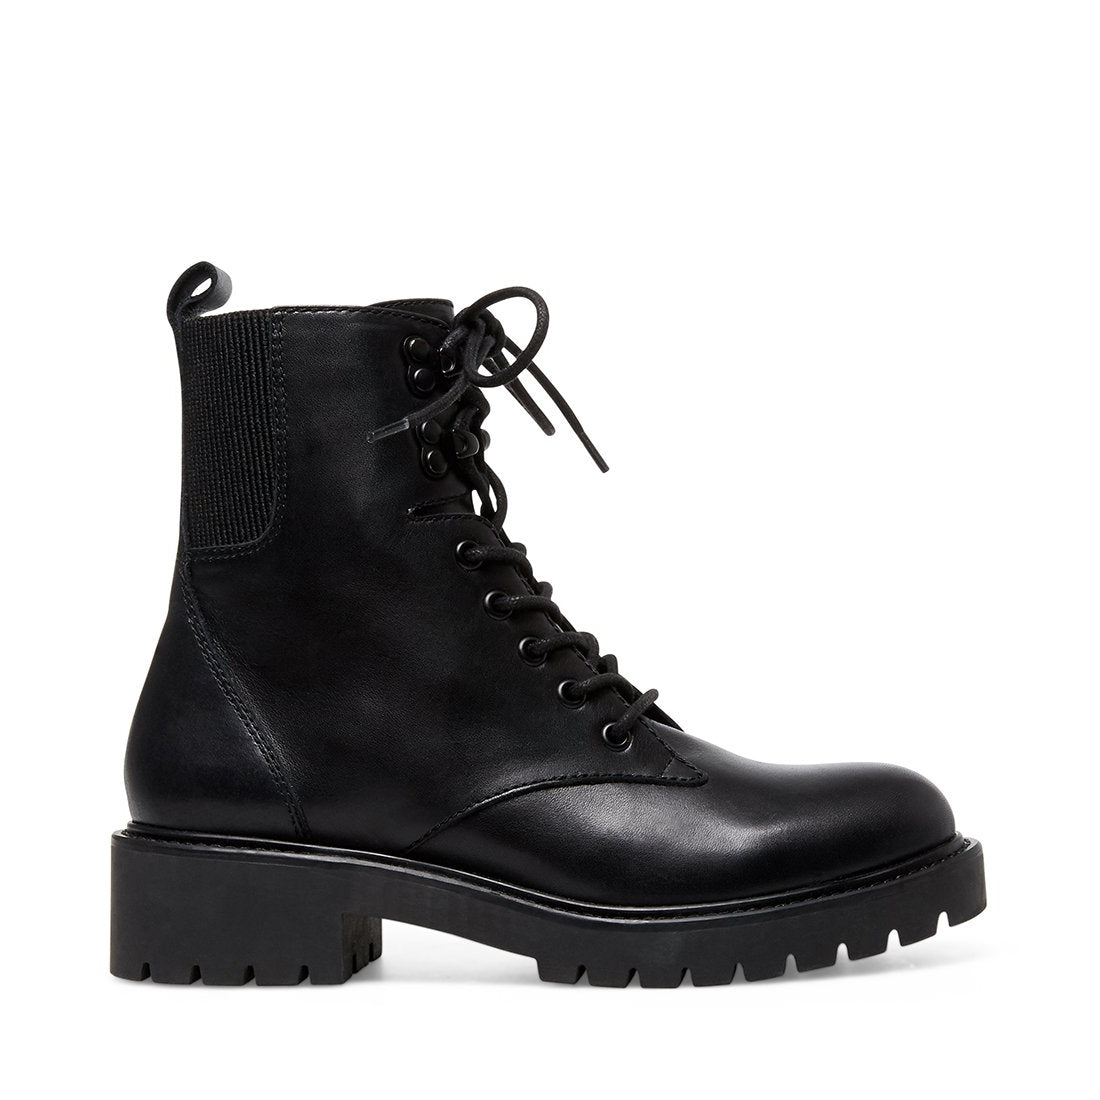 Grizzly Black Leather by Steve Madden